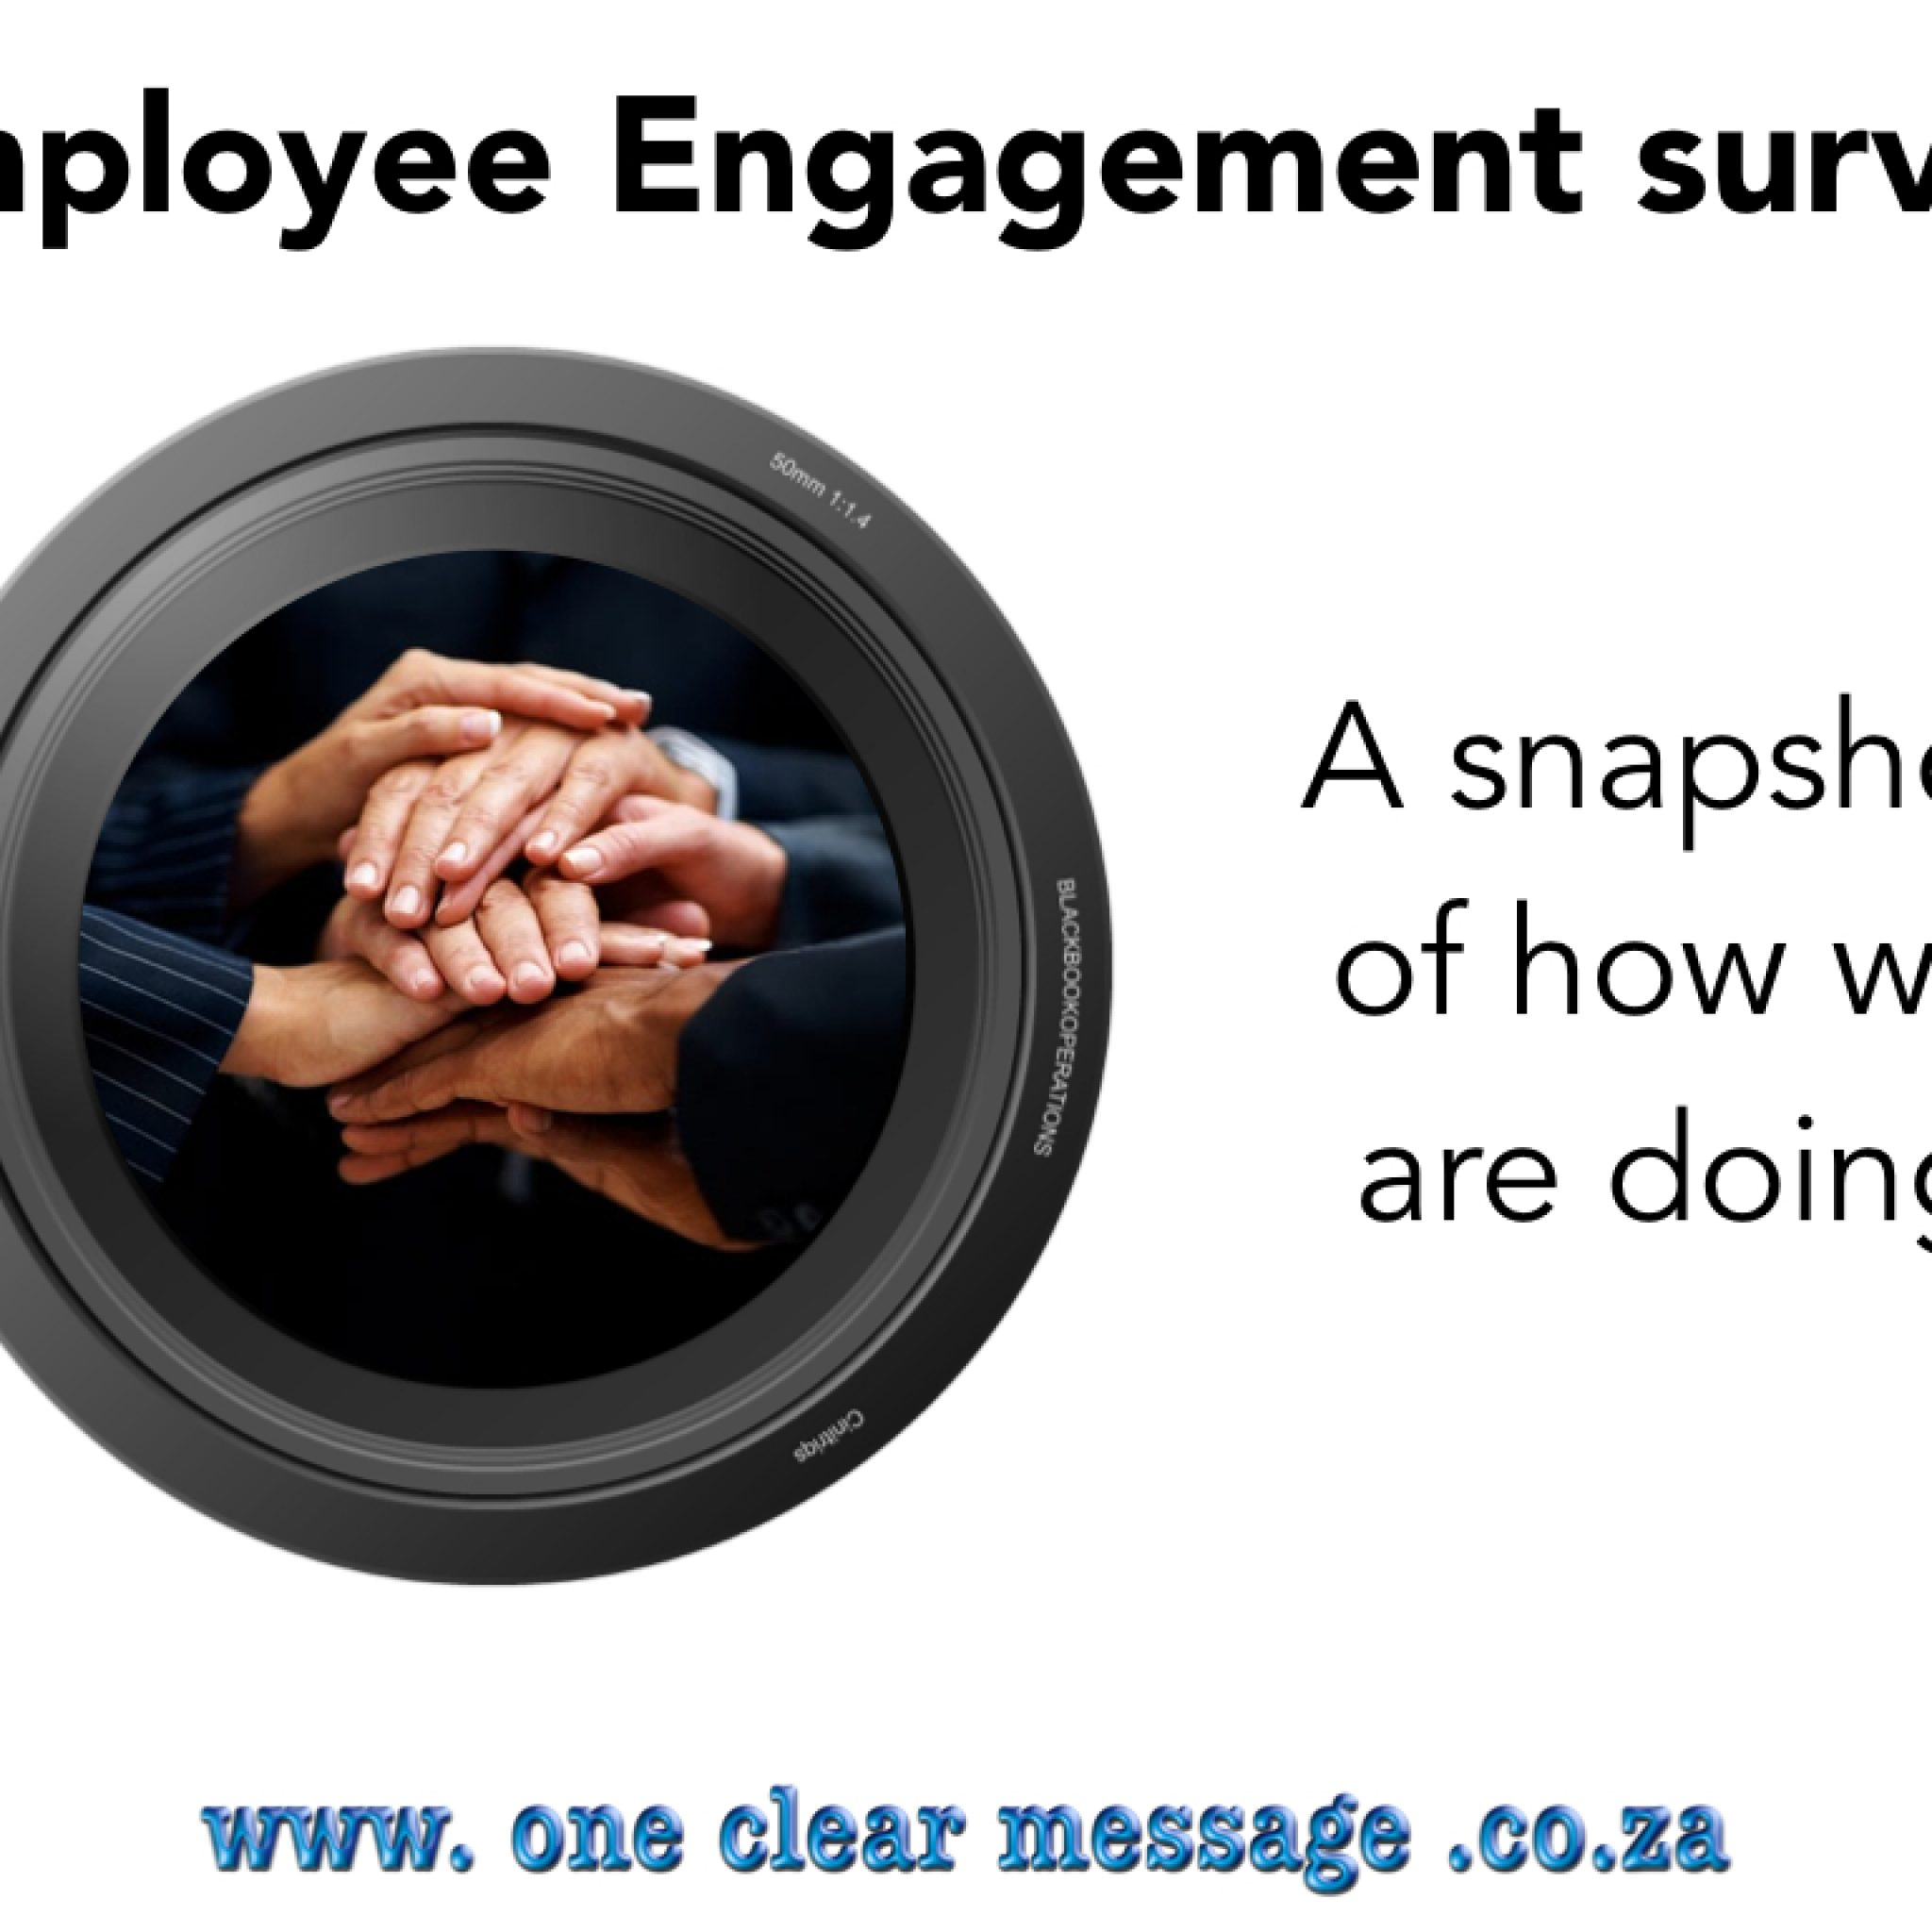 The Gallup Q12 Assessment for measuring Employee Engagement - a snapshot of where we are